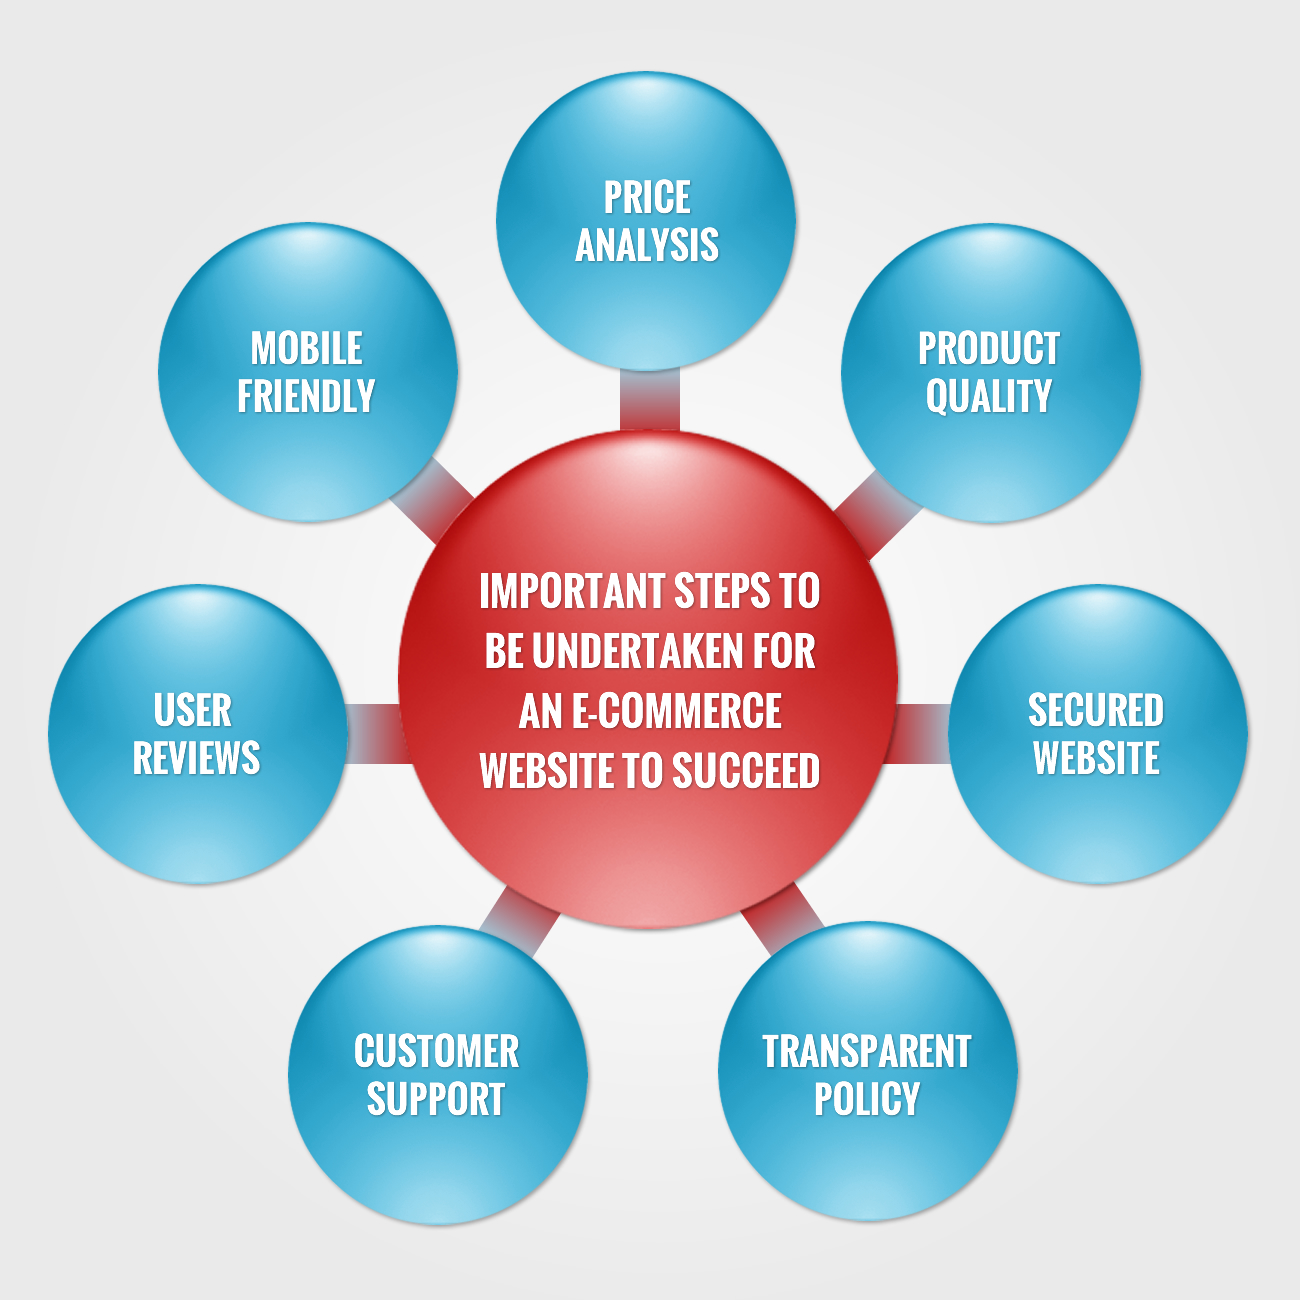 Important Steps to be undertaken for an E-commerce website to succeed